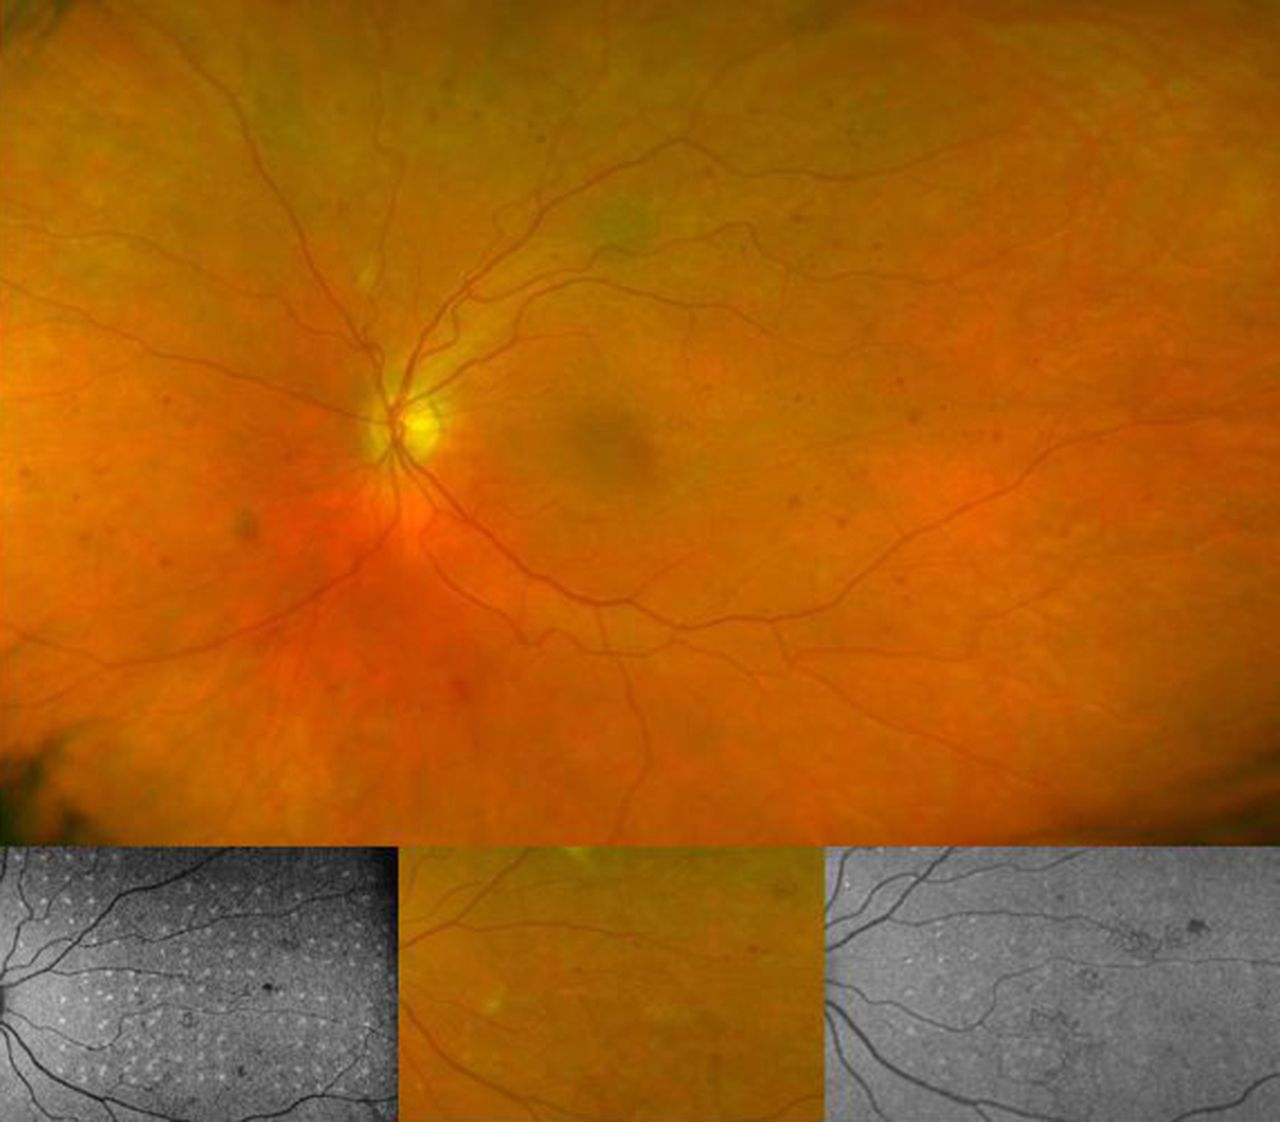 Pilot Randomised Clinical Trial Of Pascal TargETEd Retinal Versus